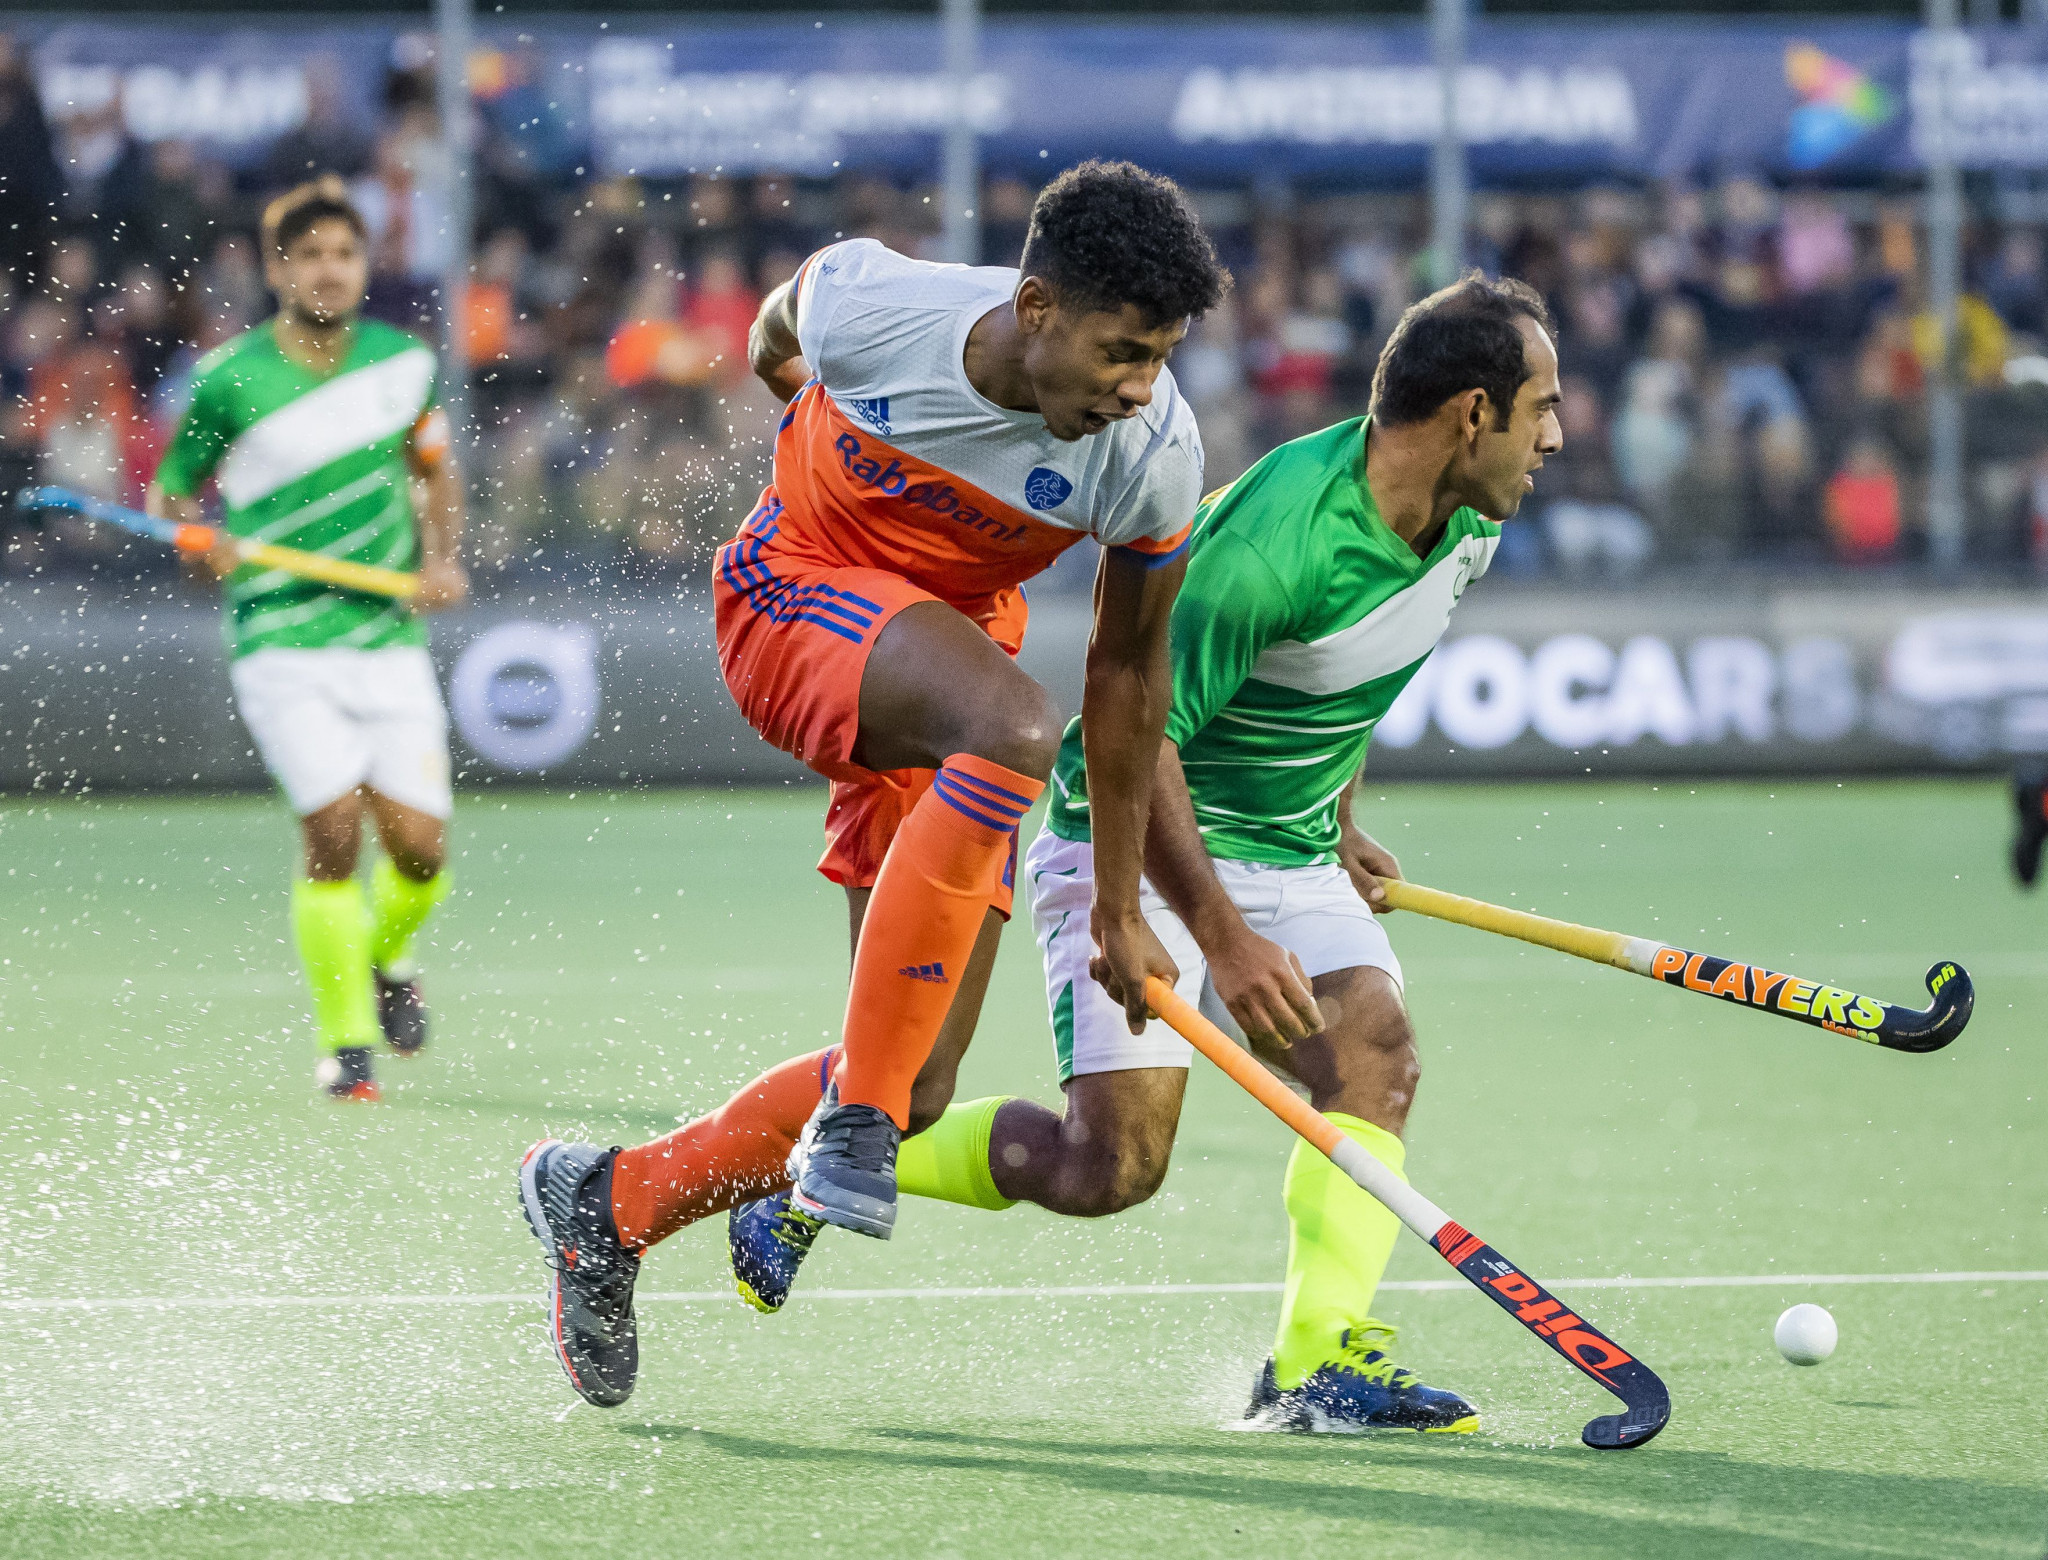 The Dutch side were far too strong for Pakistan in the second leg in Amsterdam ©Getty Images